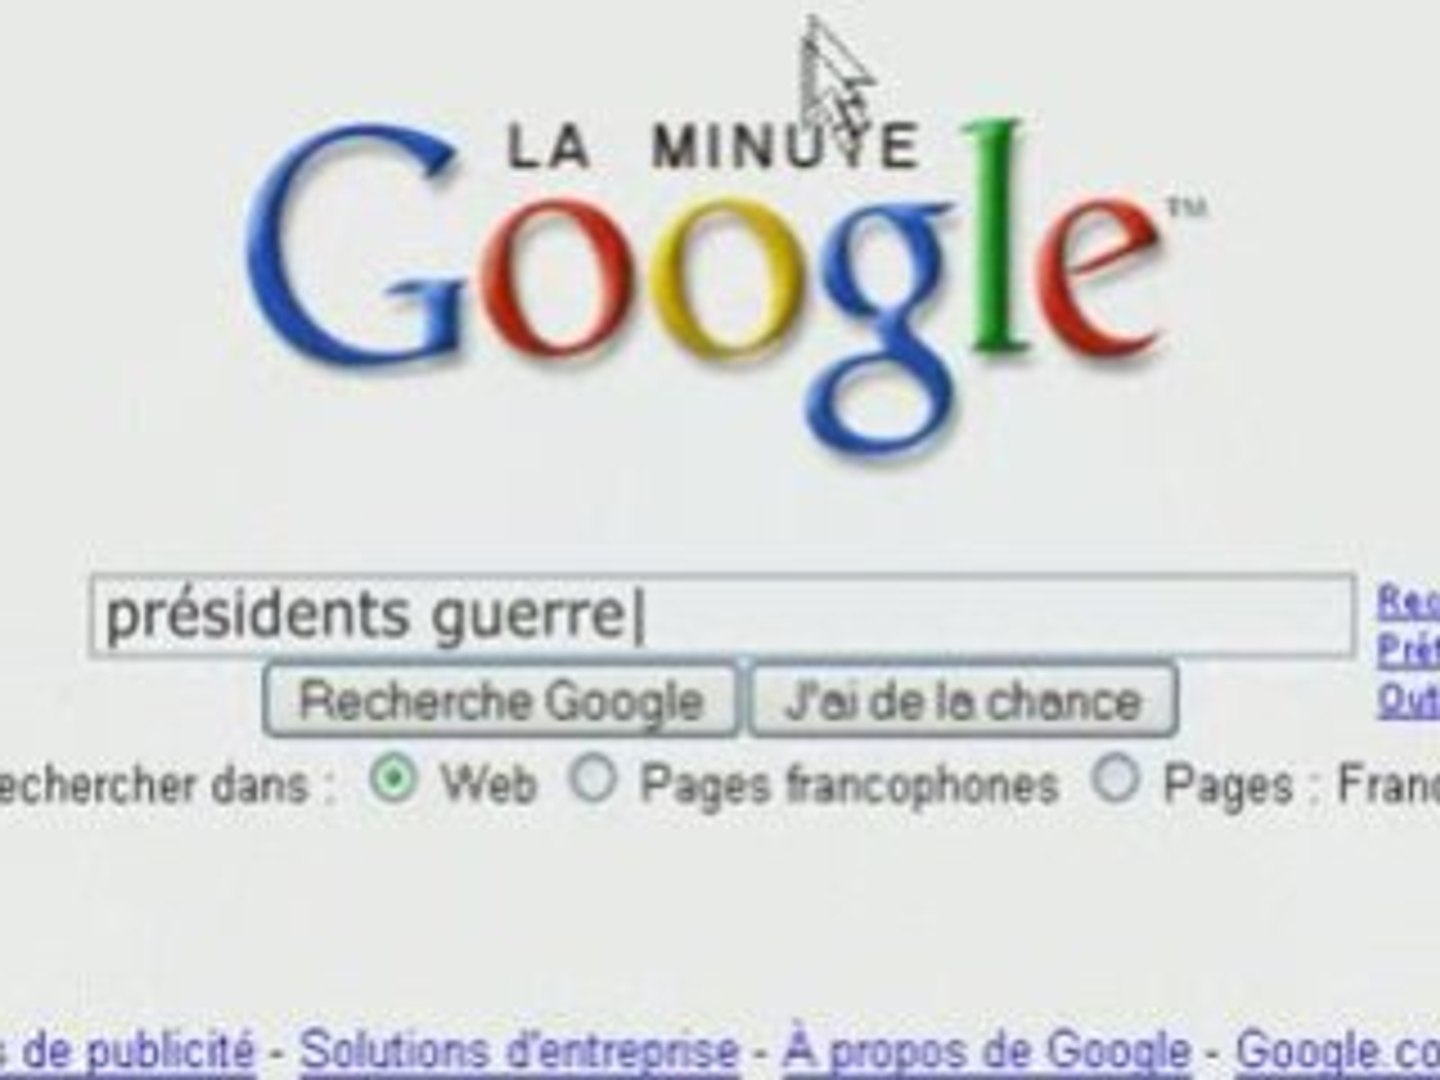 Minute Google - presidents guerre